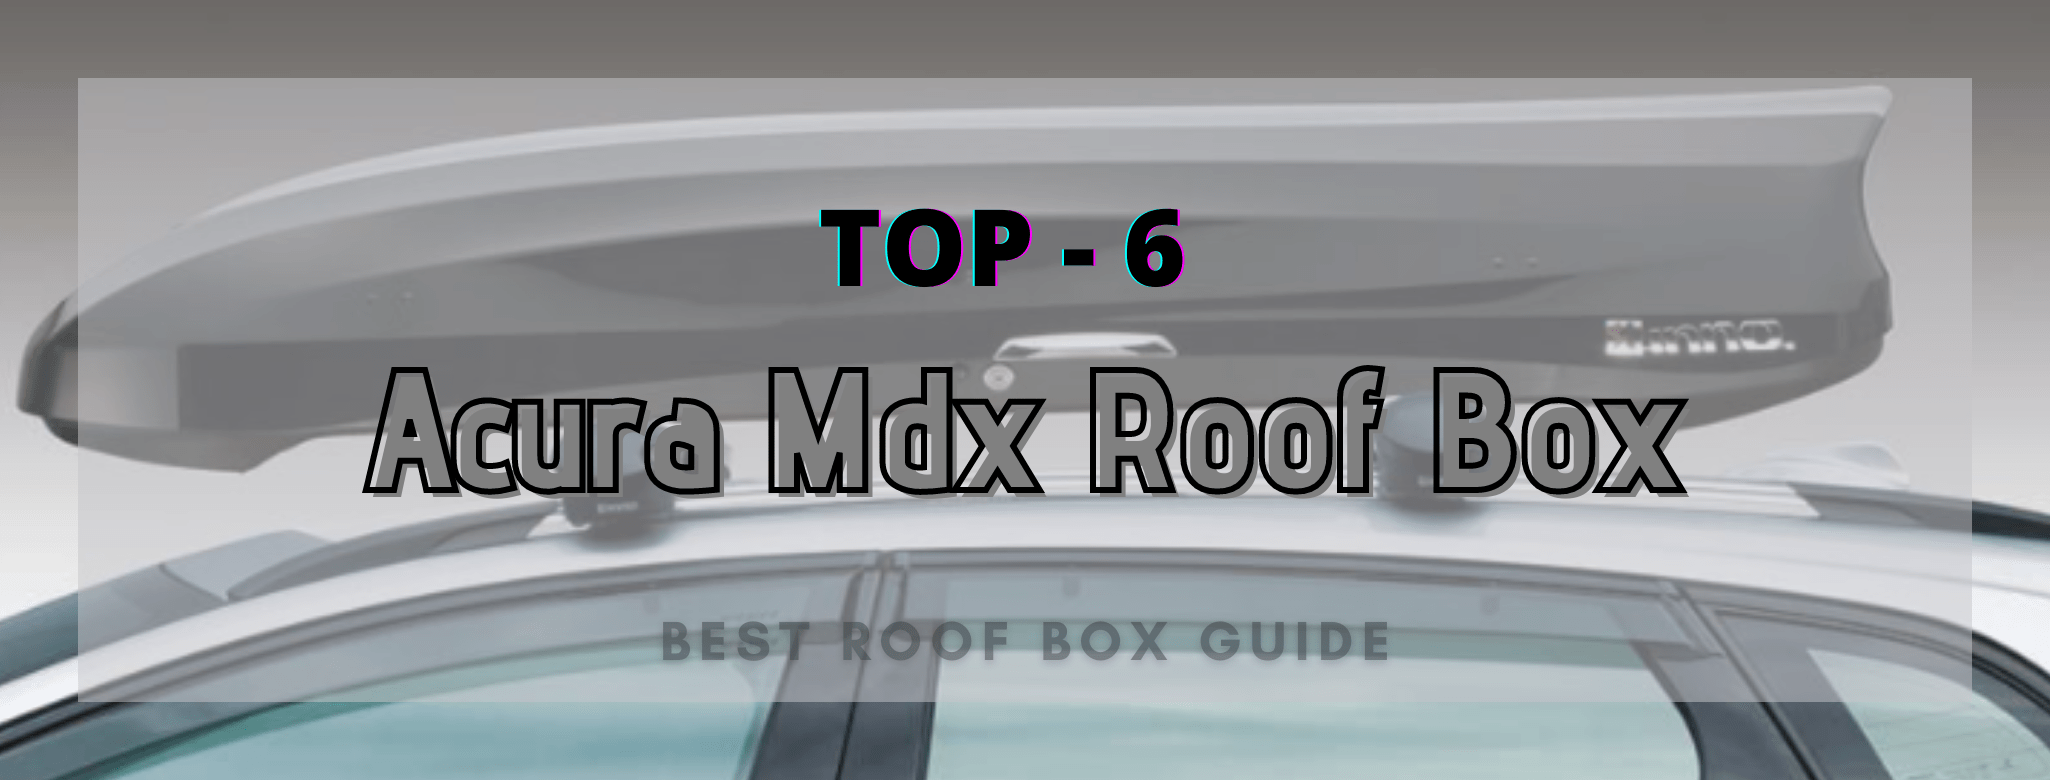 👉 Top 6 Acura MDX Roof Box – Buying Guides And Reviews 🚘